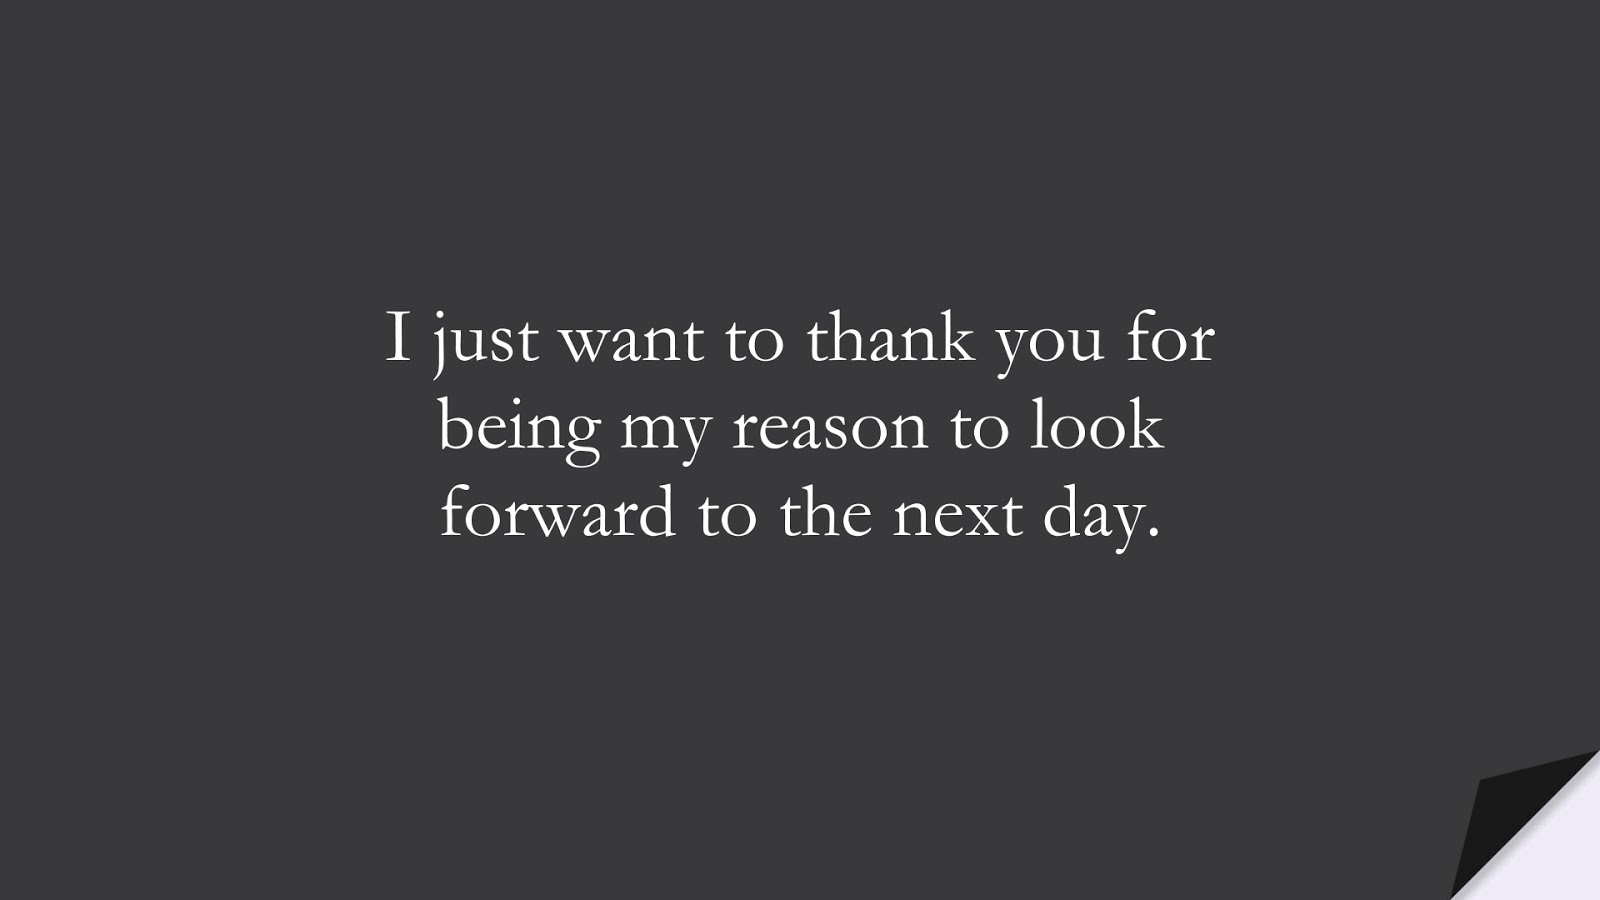 I just want to thank you for being my reason to look forward to the next day.FALSE